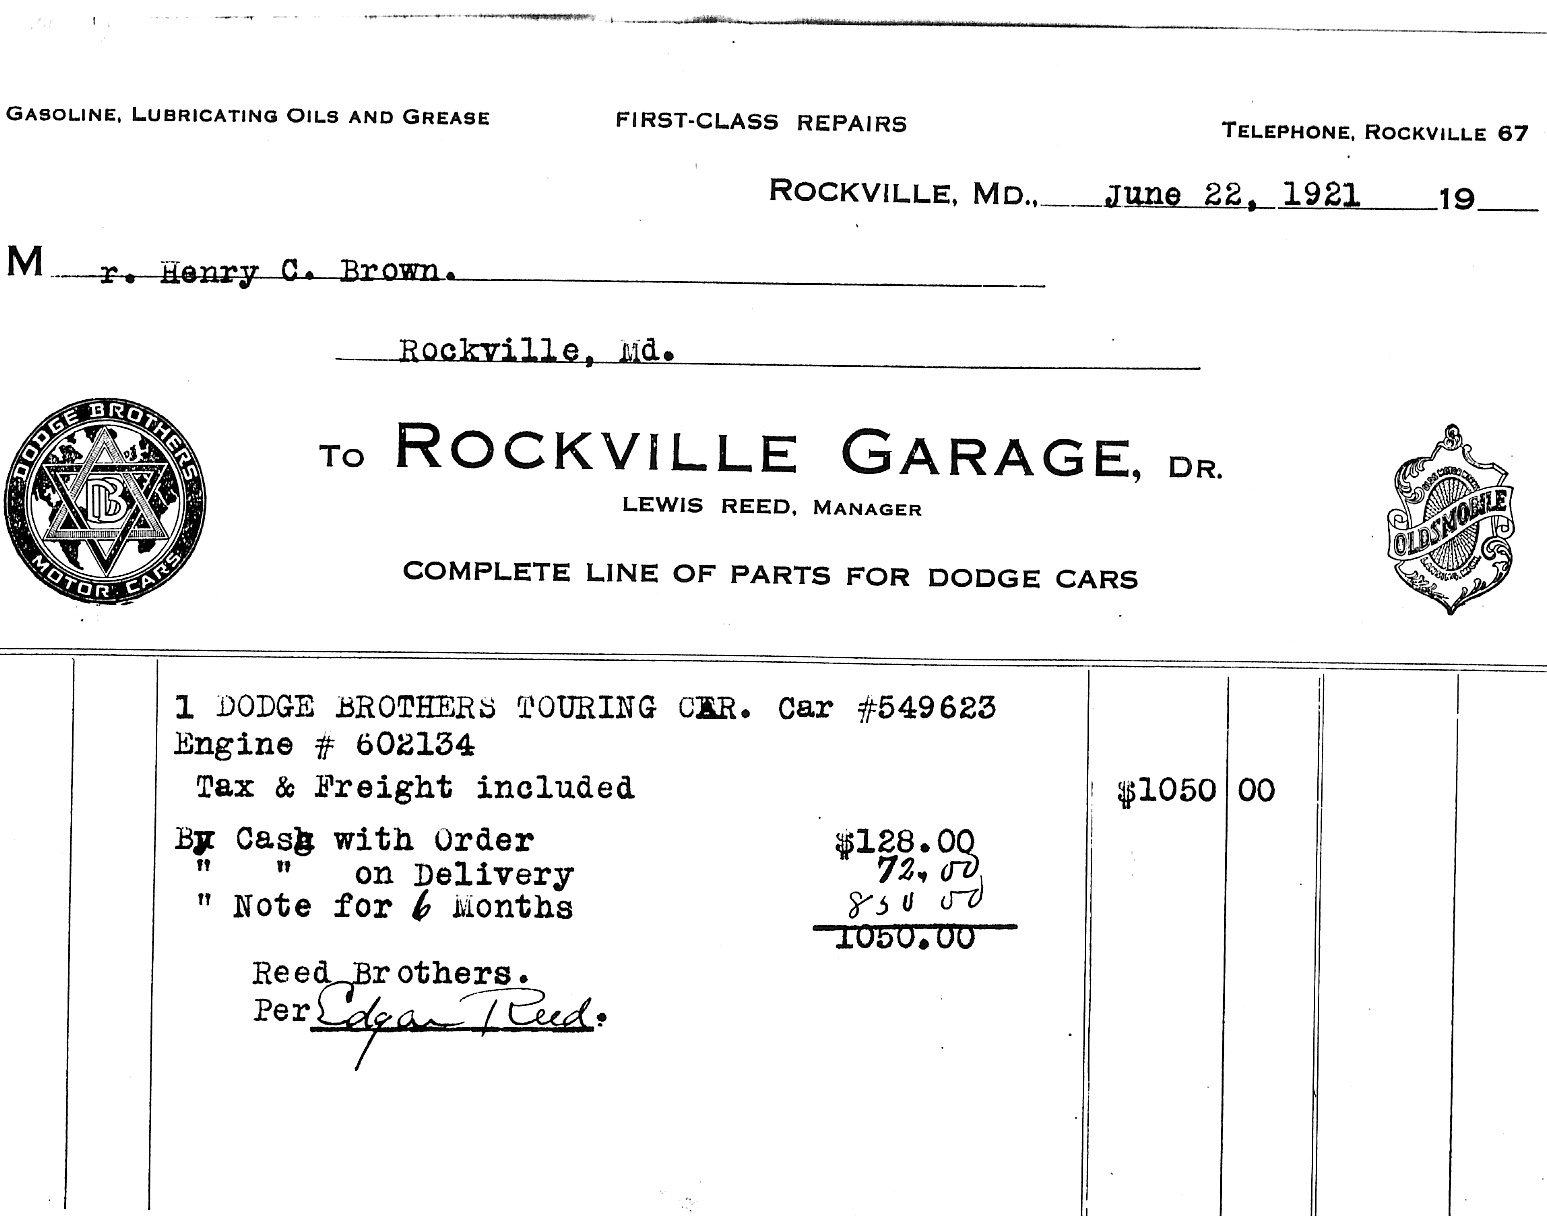 auto dealer invoice original dealer invoice reed brothers dodge history 1915 2012 1547 X 1216